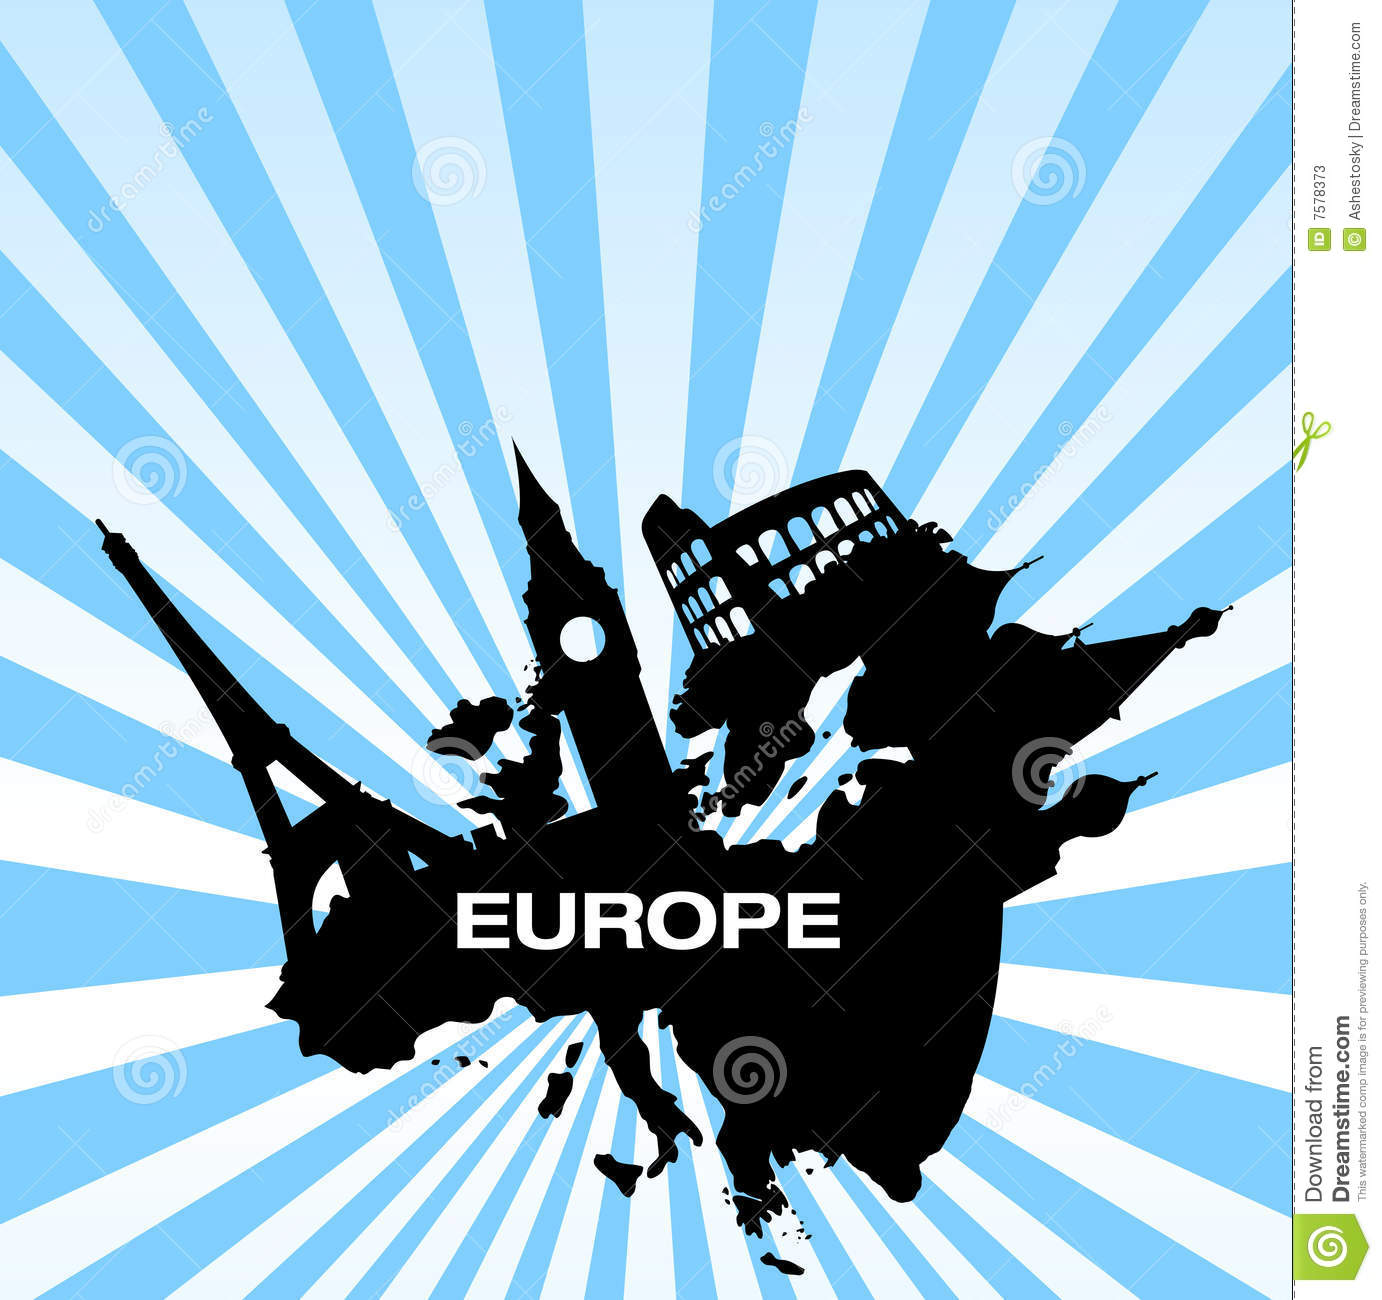 1382x1300 Europe Clipart Europe Travel